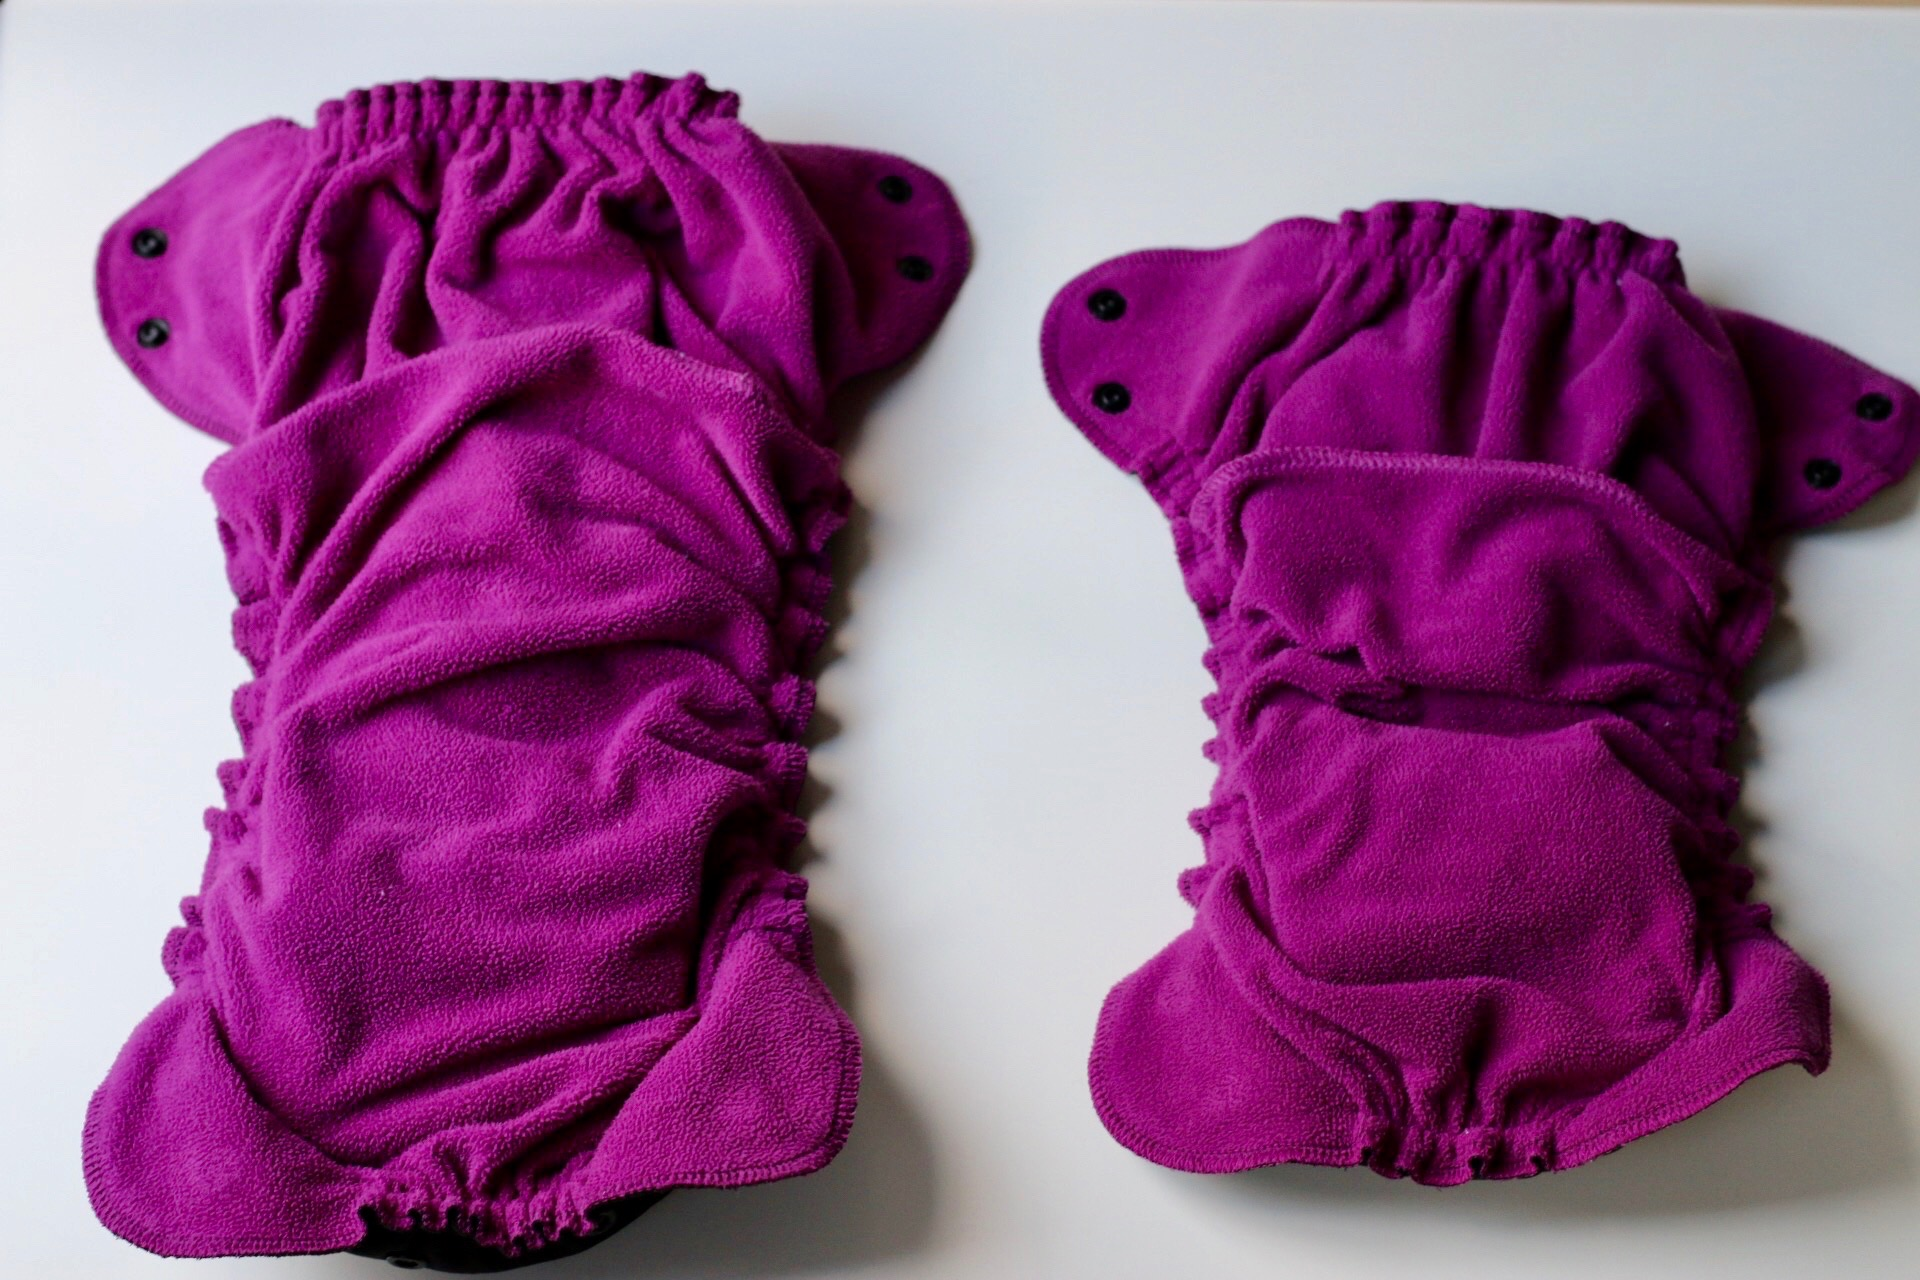 Size two (left), Size one (right)